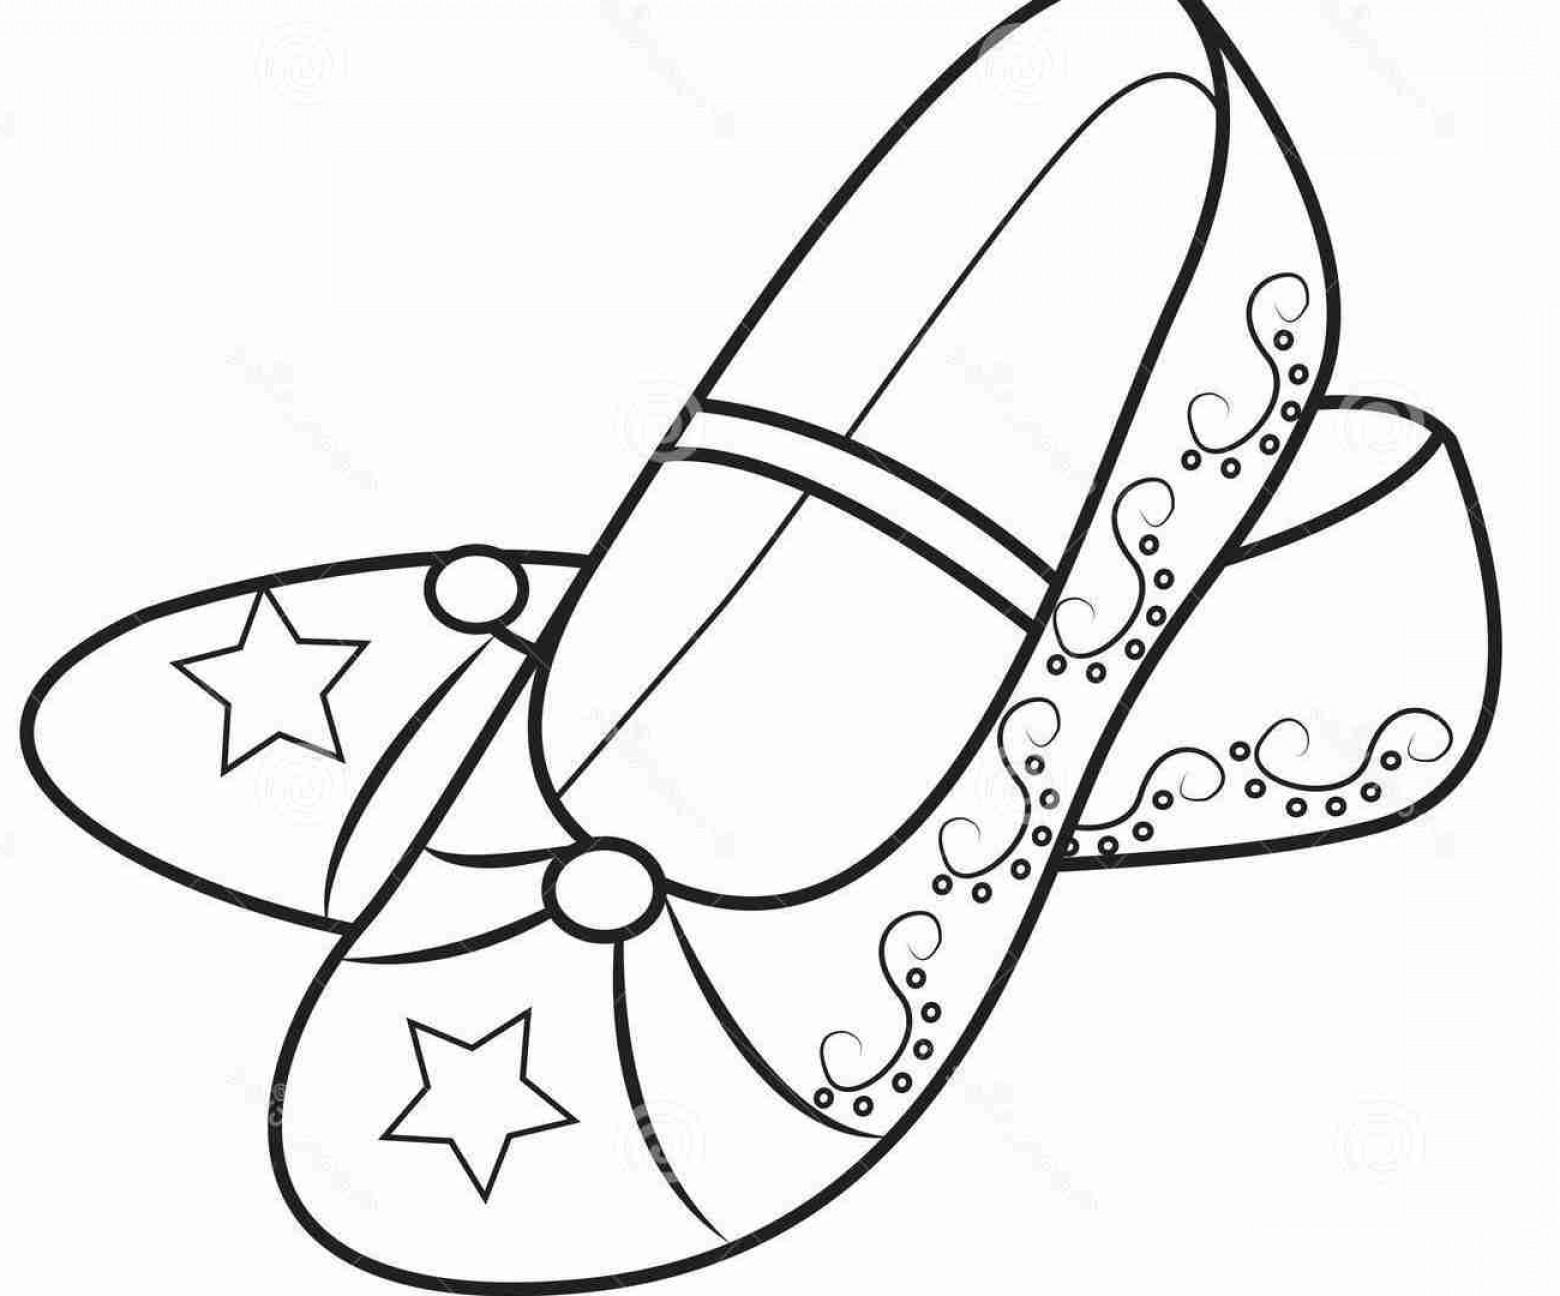 1560x1296 High Heel Shoe Coloring Pages For Adults And Kids In Color